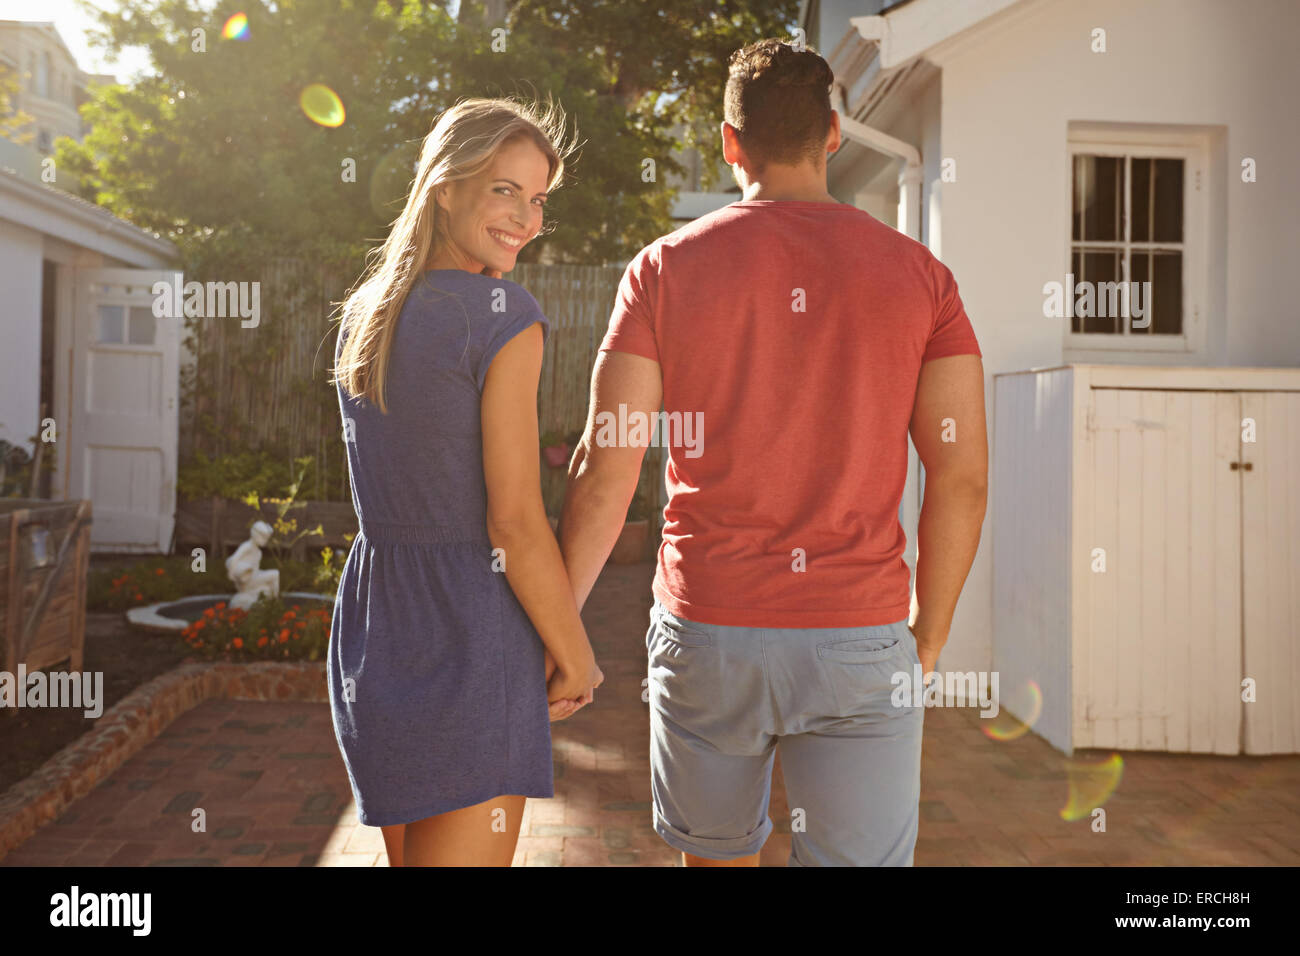 Young caucasian couple walking in the backyard holding hand in hand on a bright summer day, with woman looking back - Stock Image